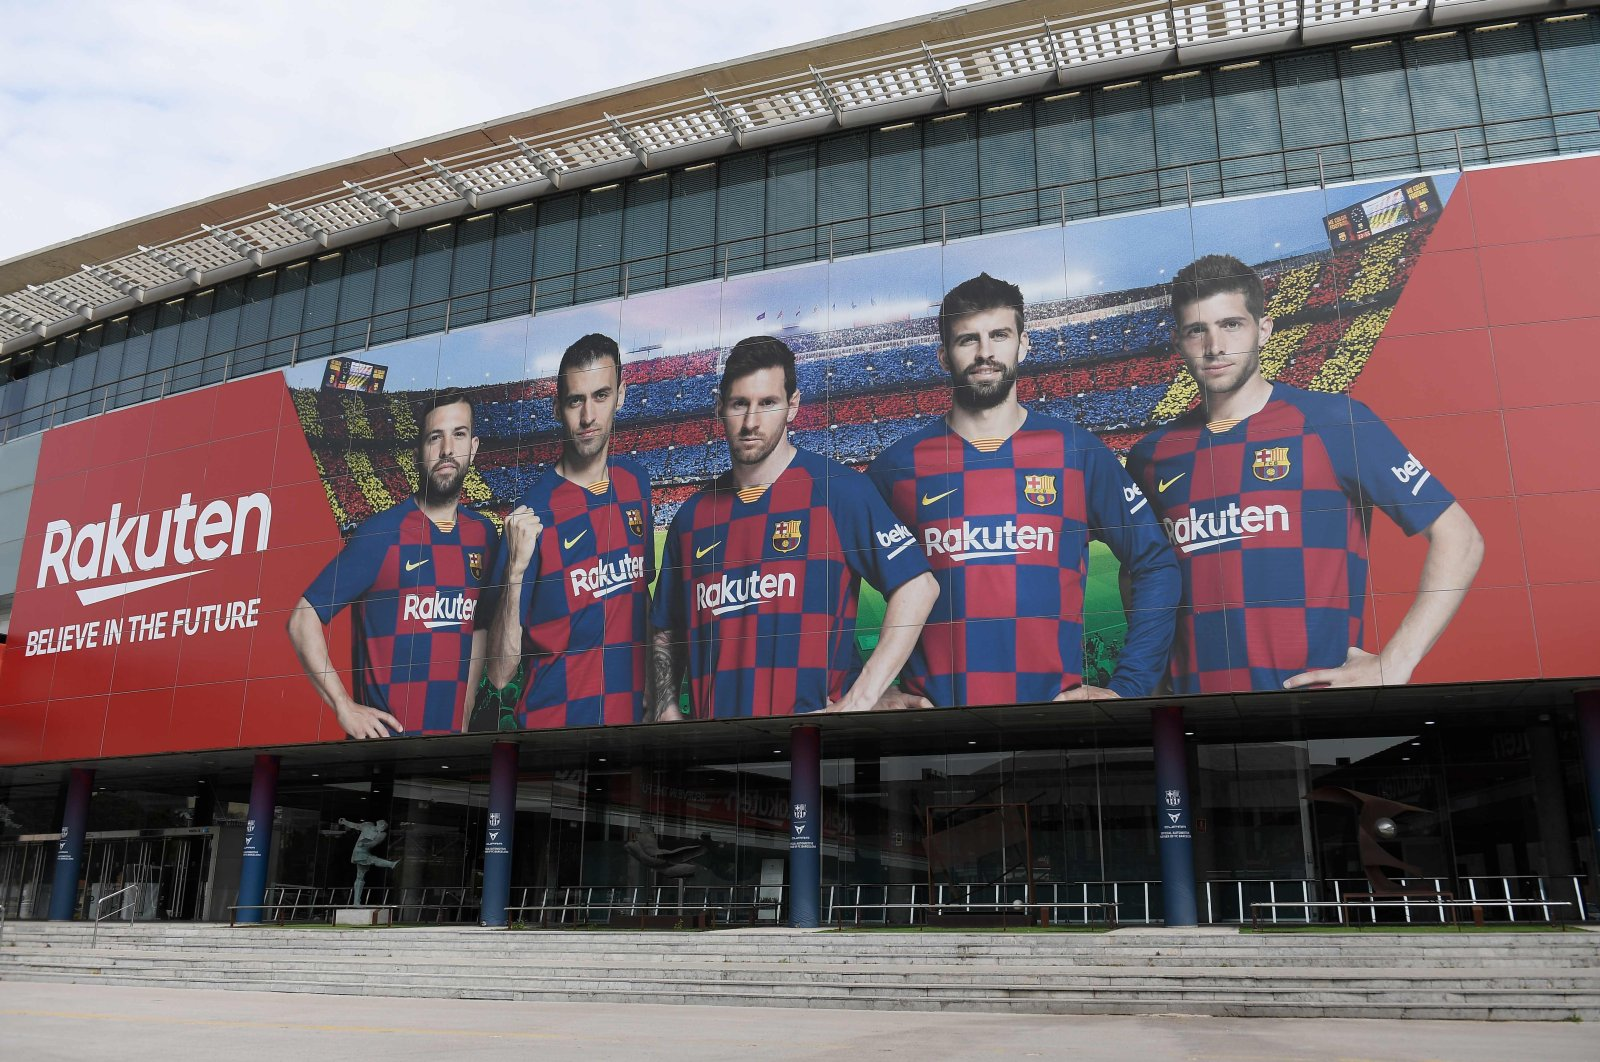 A picture shows the empty entrance to the Camp Nou stadium in Barcelona on March 13, after La Liga said Spain's top two divisions would be suspended for at least two weeks over the coronavirus outbreak. (AFP Photo)